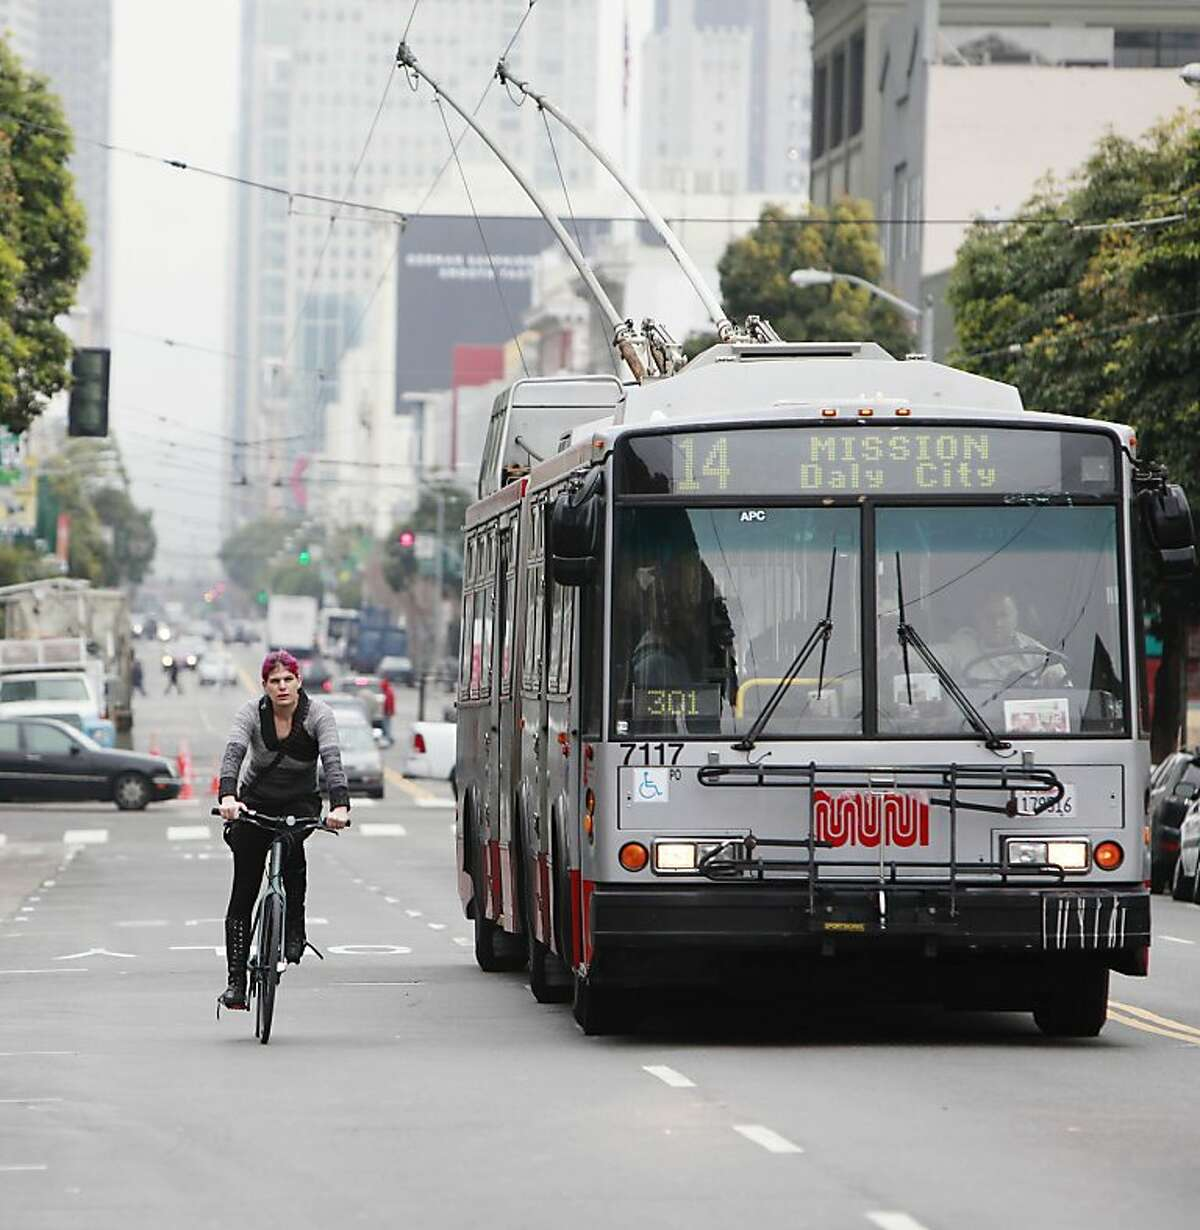 Naomi Seyfer of Berkeley on a bicycle and a 14 Mission line Muni bus make their way west bound on Mission Street on Monday, February 4, 2013 in San Francisco, Calif.